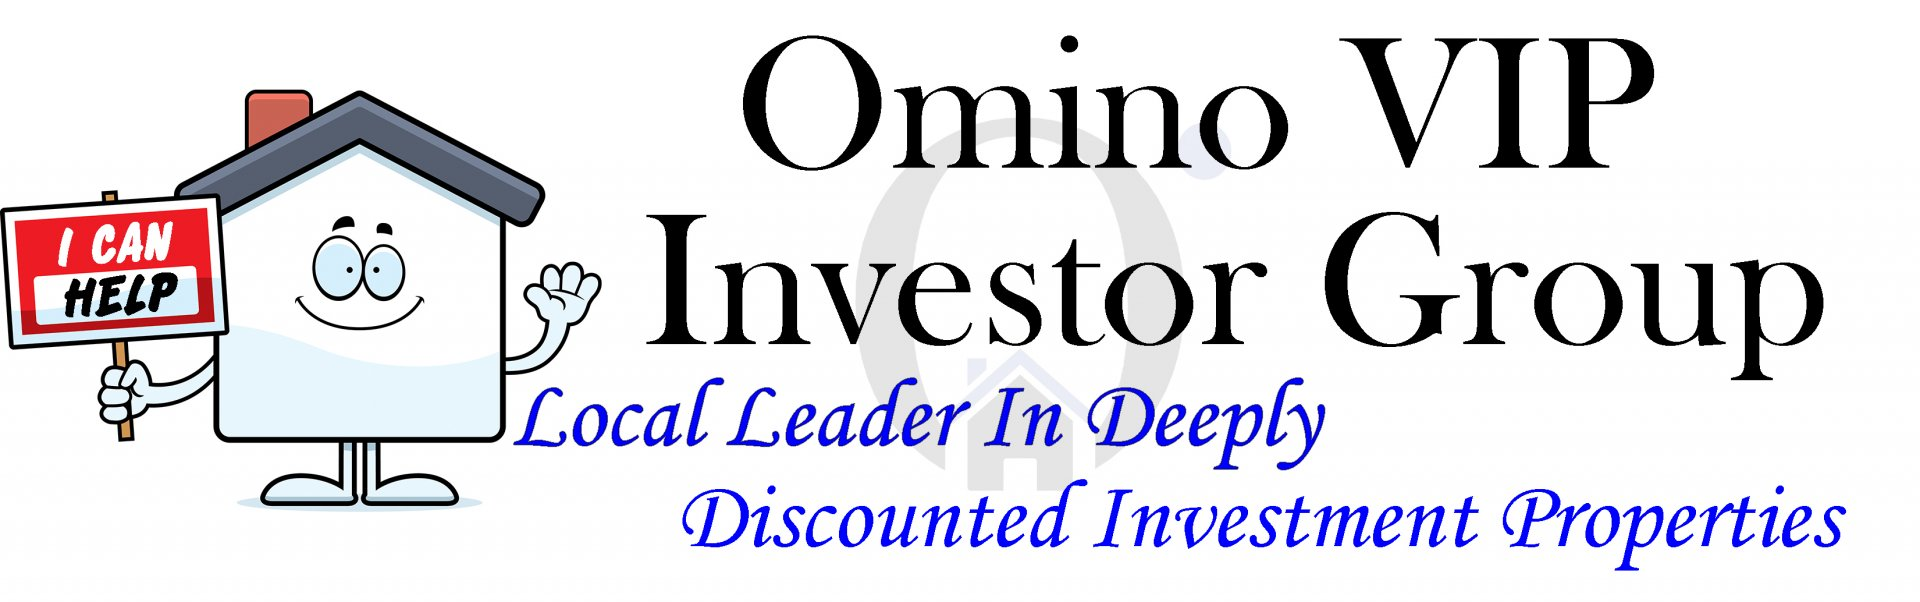 VIP Investor Group logo